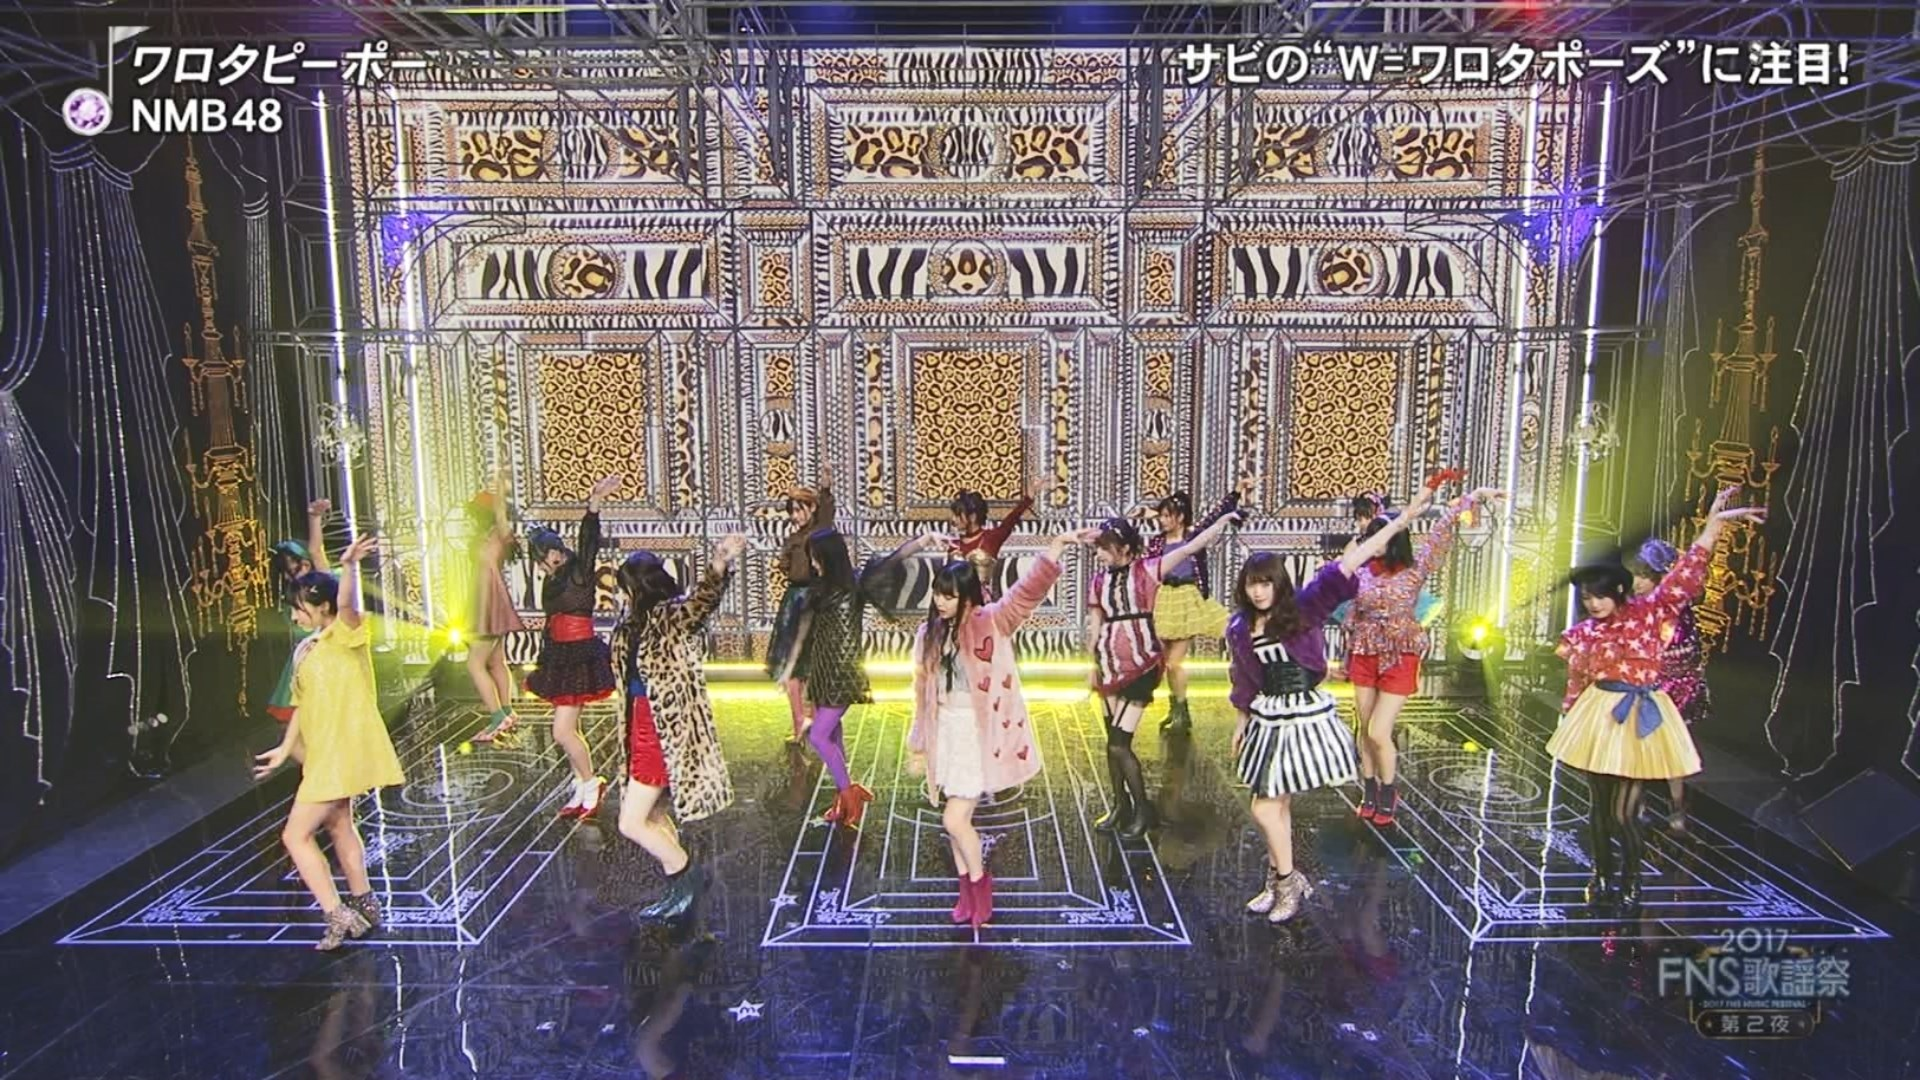 2017FNS歌謡祭第2夜・NMB48ワロタピーポーキャプ-101